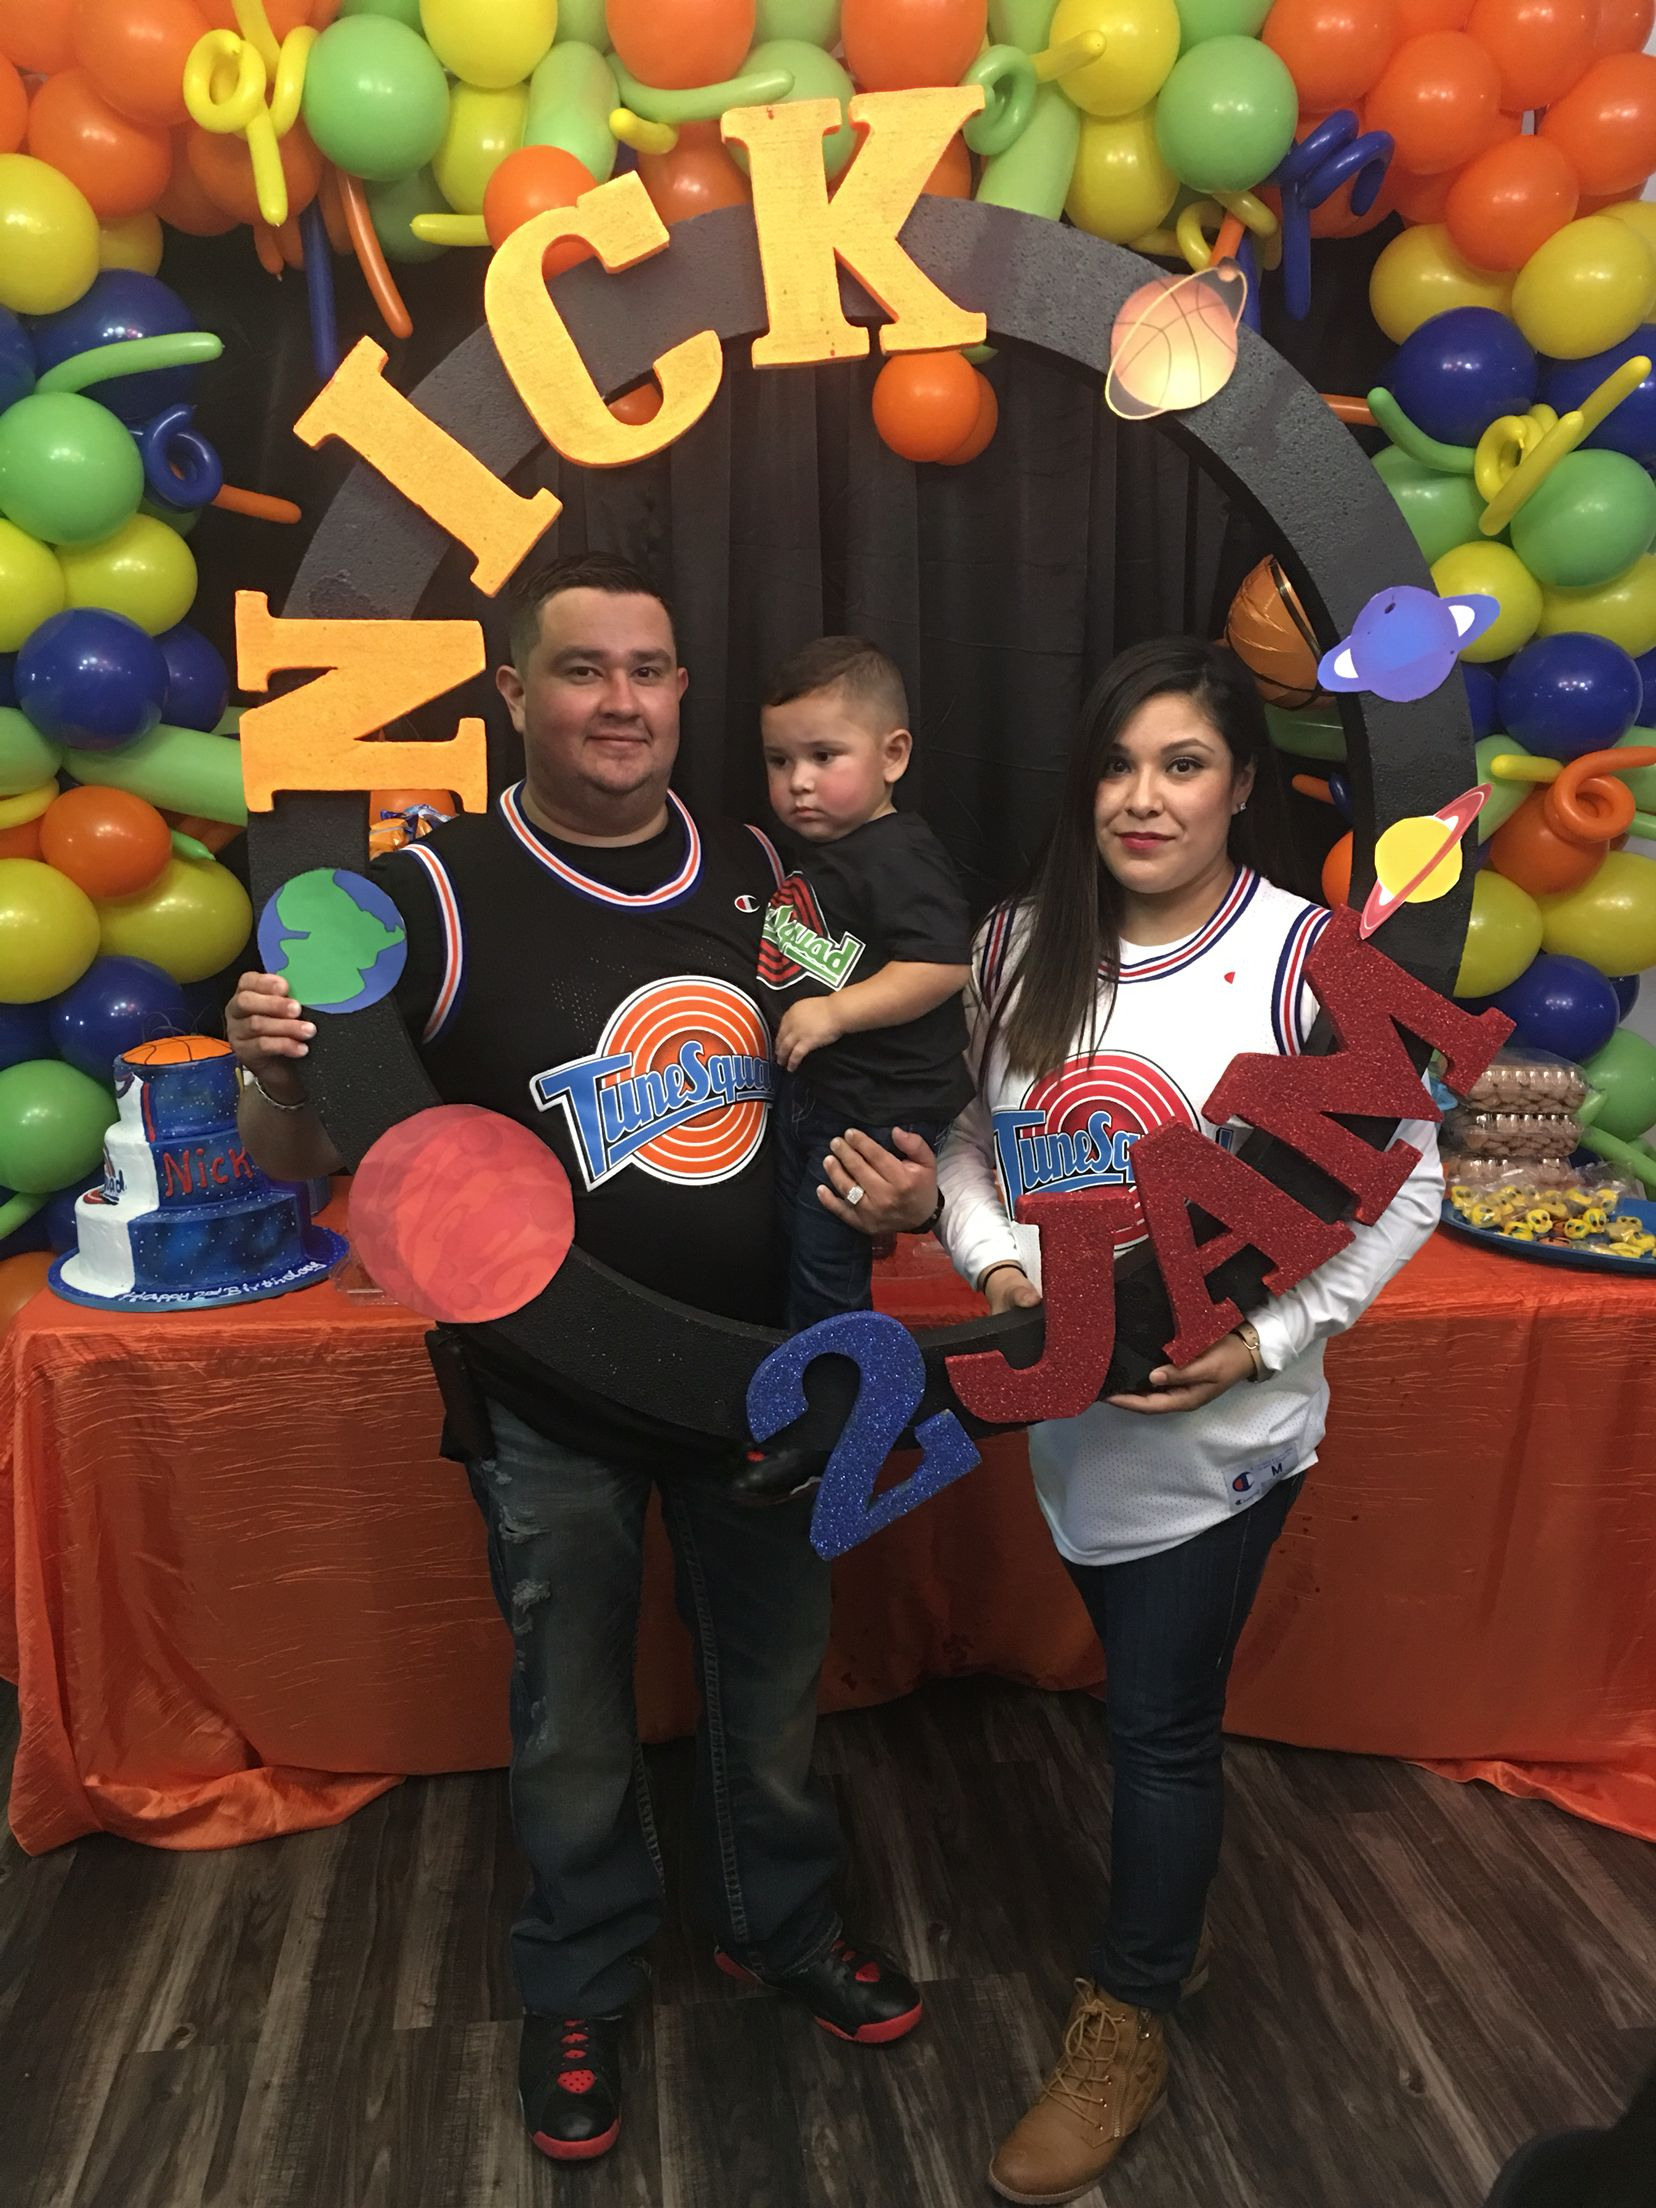 Family tune squad jersey space jam | Baby boy 1st birthday party, Kids  themed birthday parties, 1st birthday party themes